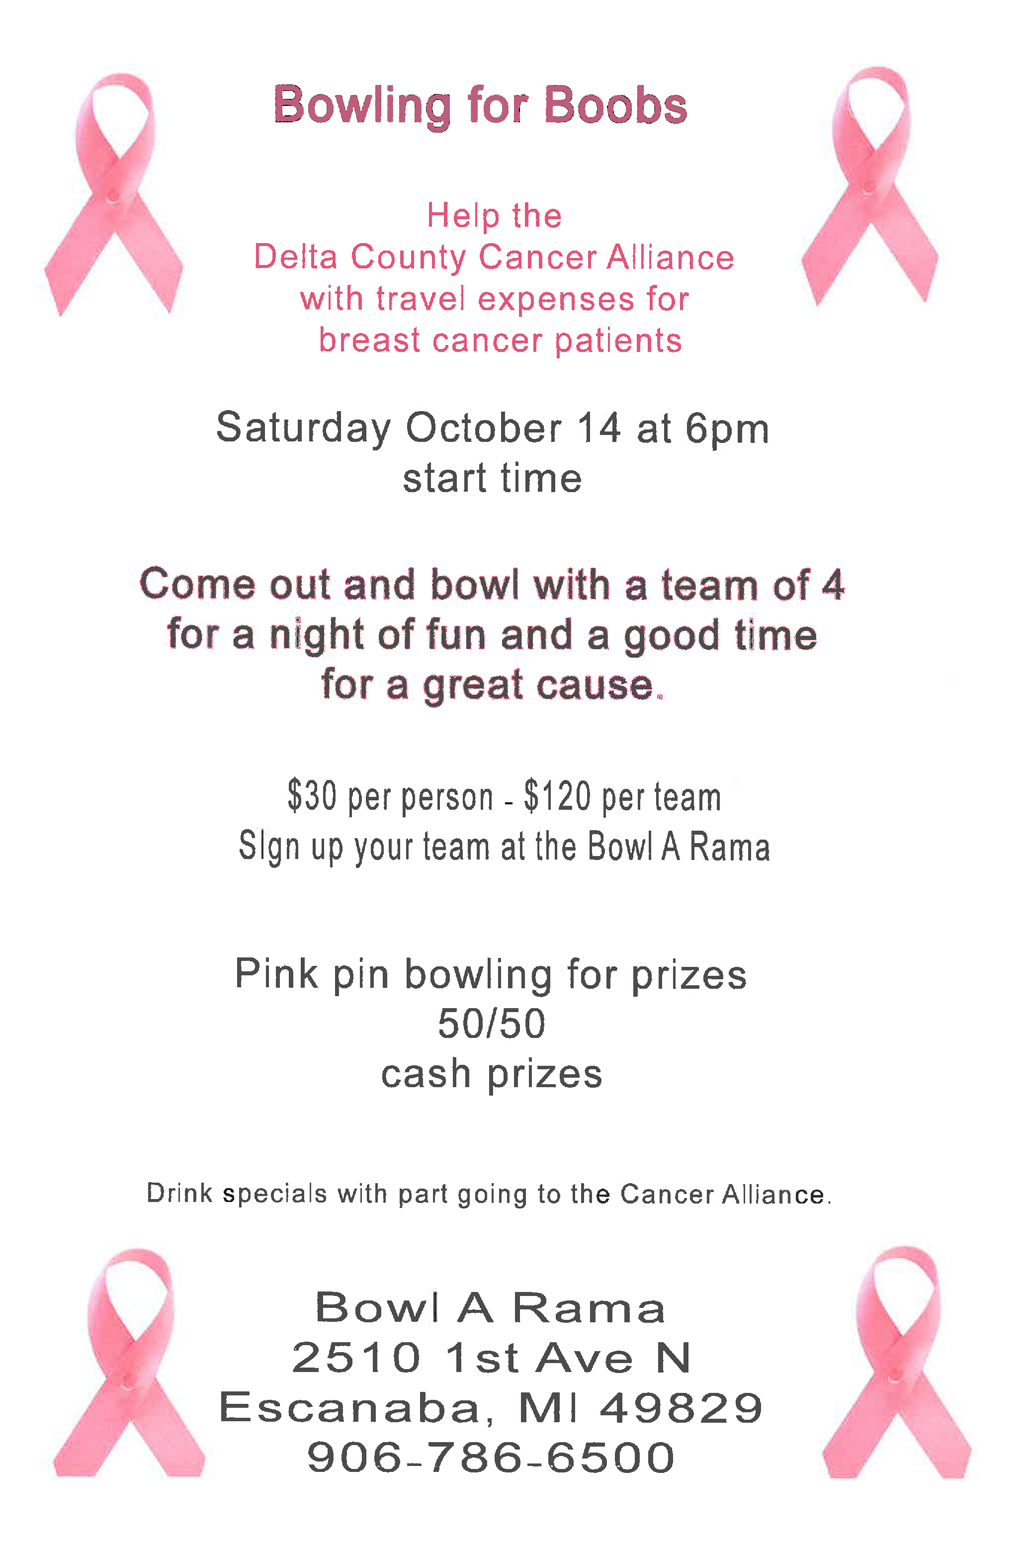 Support the Delta County Cancer Alliance and patient travel expenses.